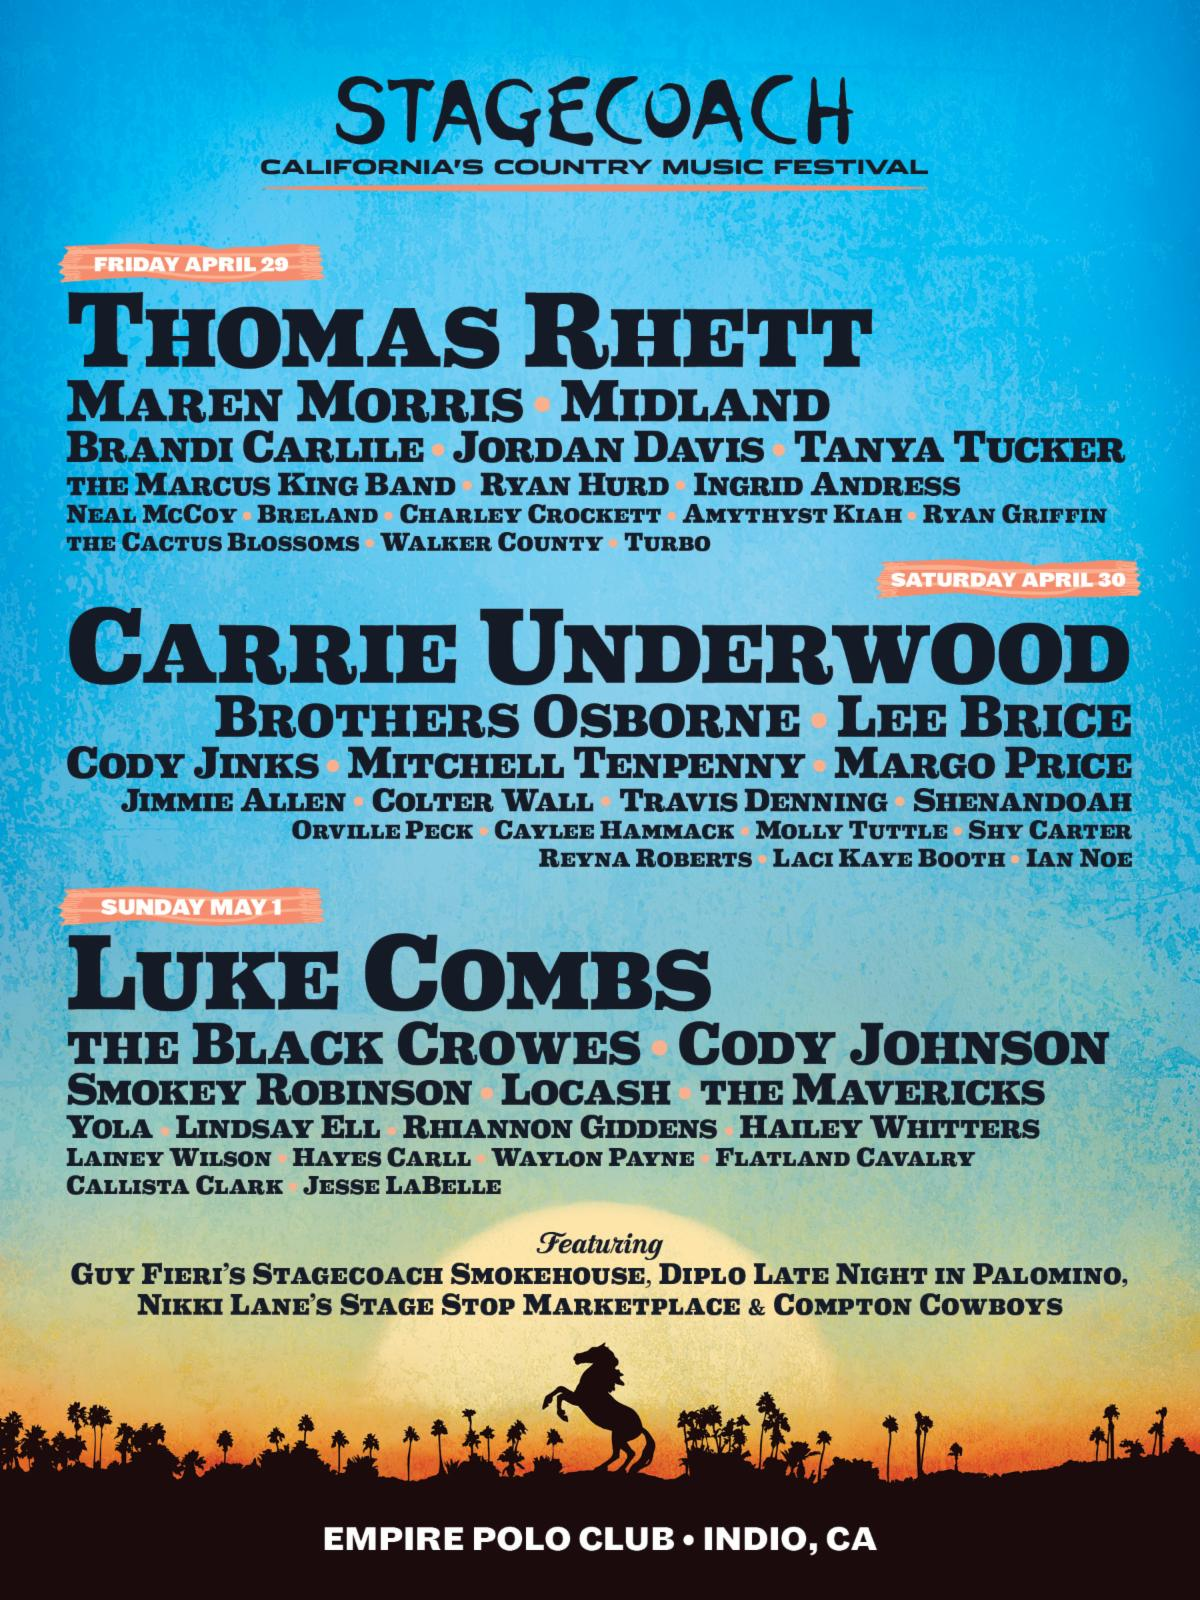 Stagecoach 2022 lineup poster